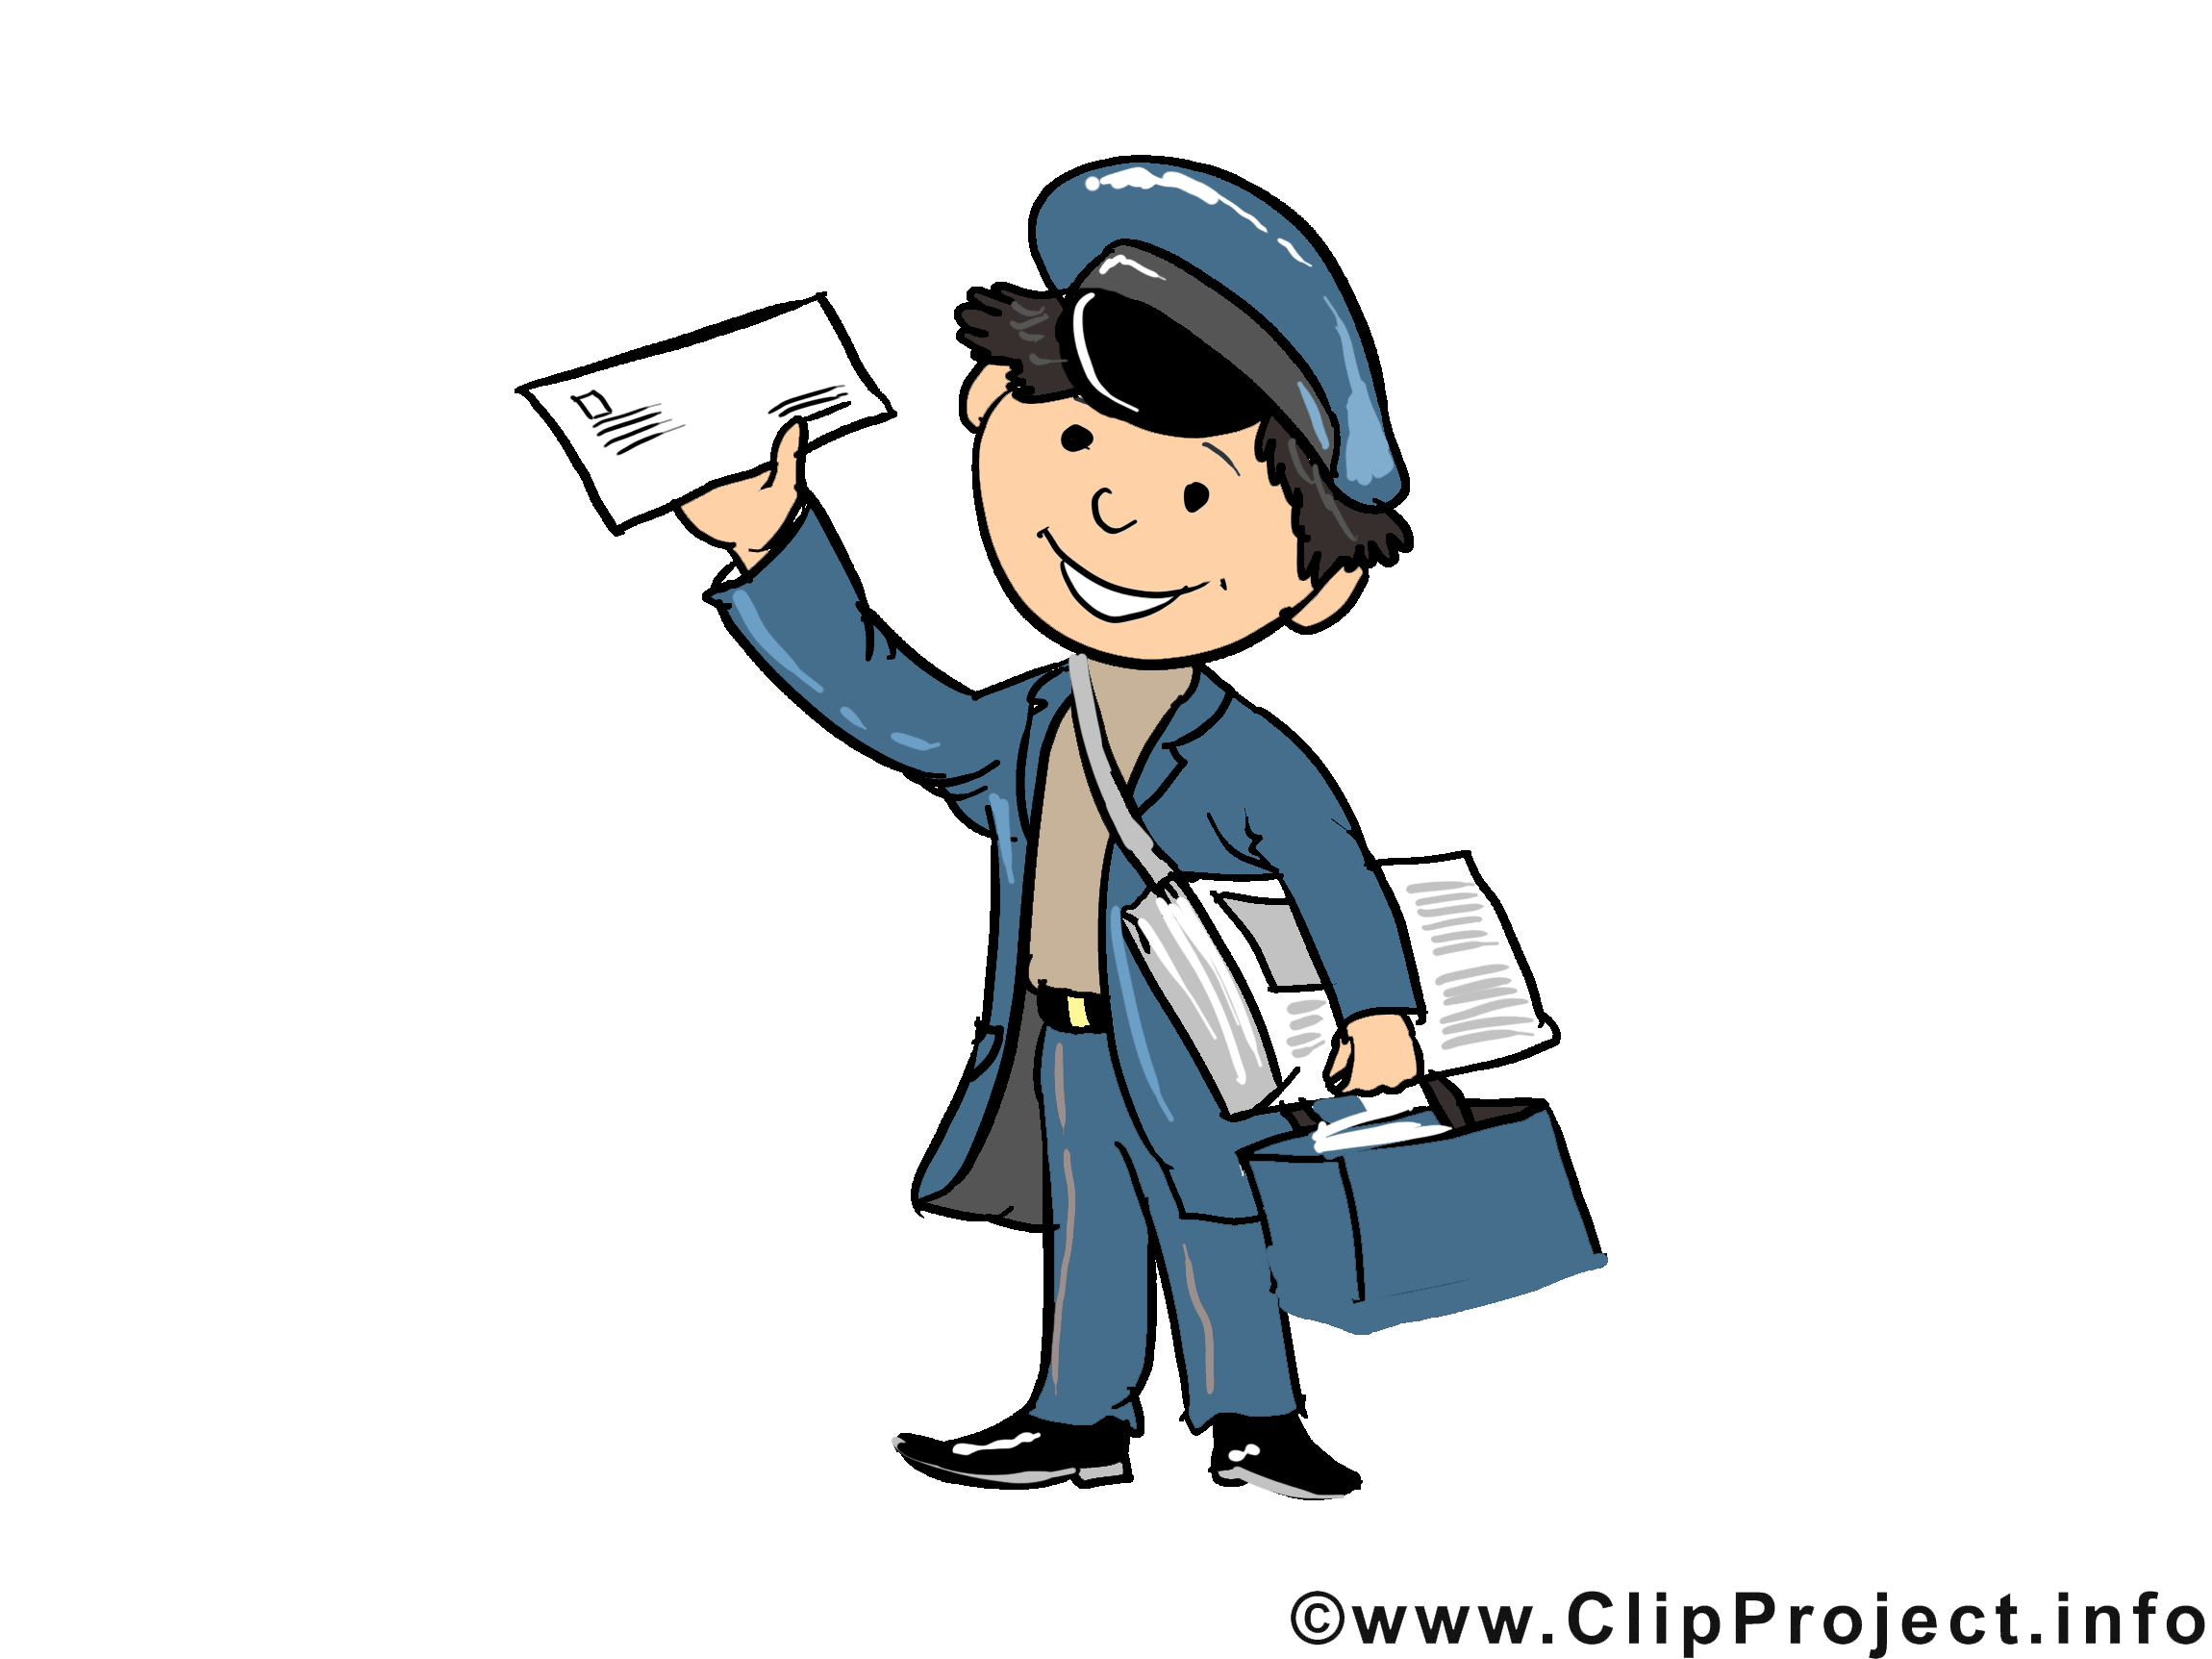 Postbote Bild, Cartoon, Illustration, Clipart.